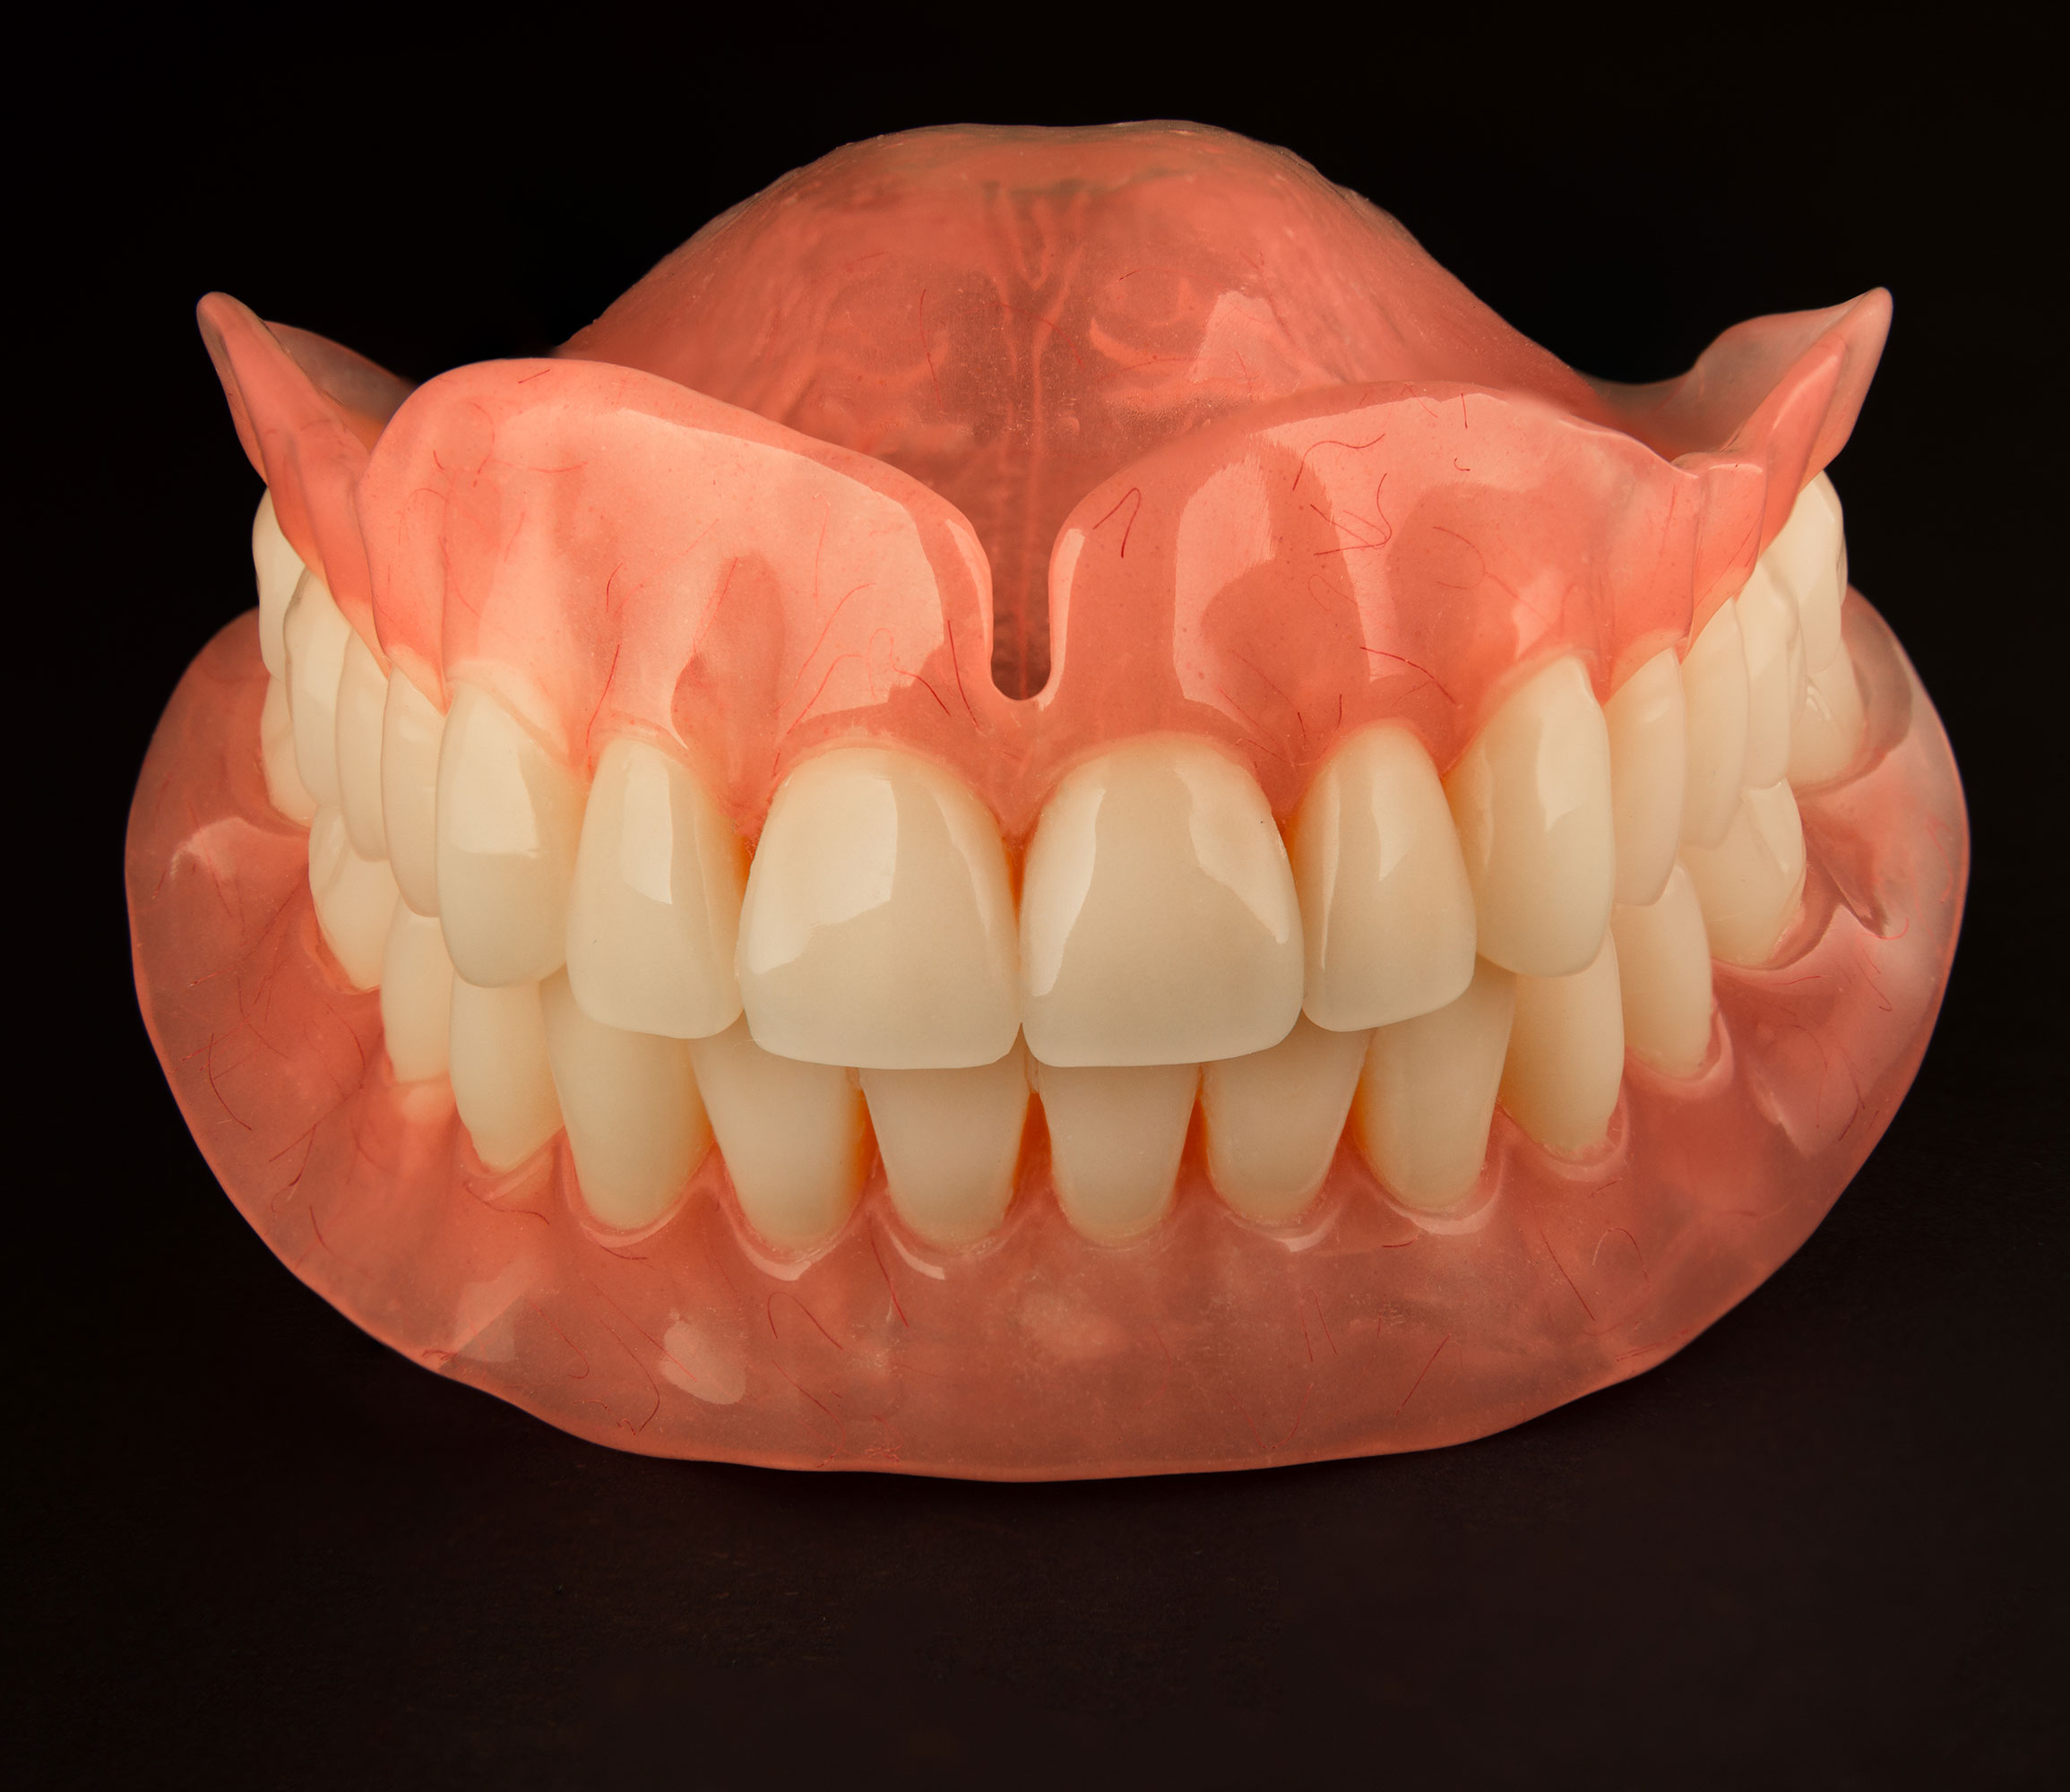 Partial/Full Dentures